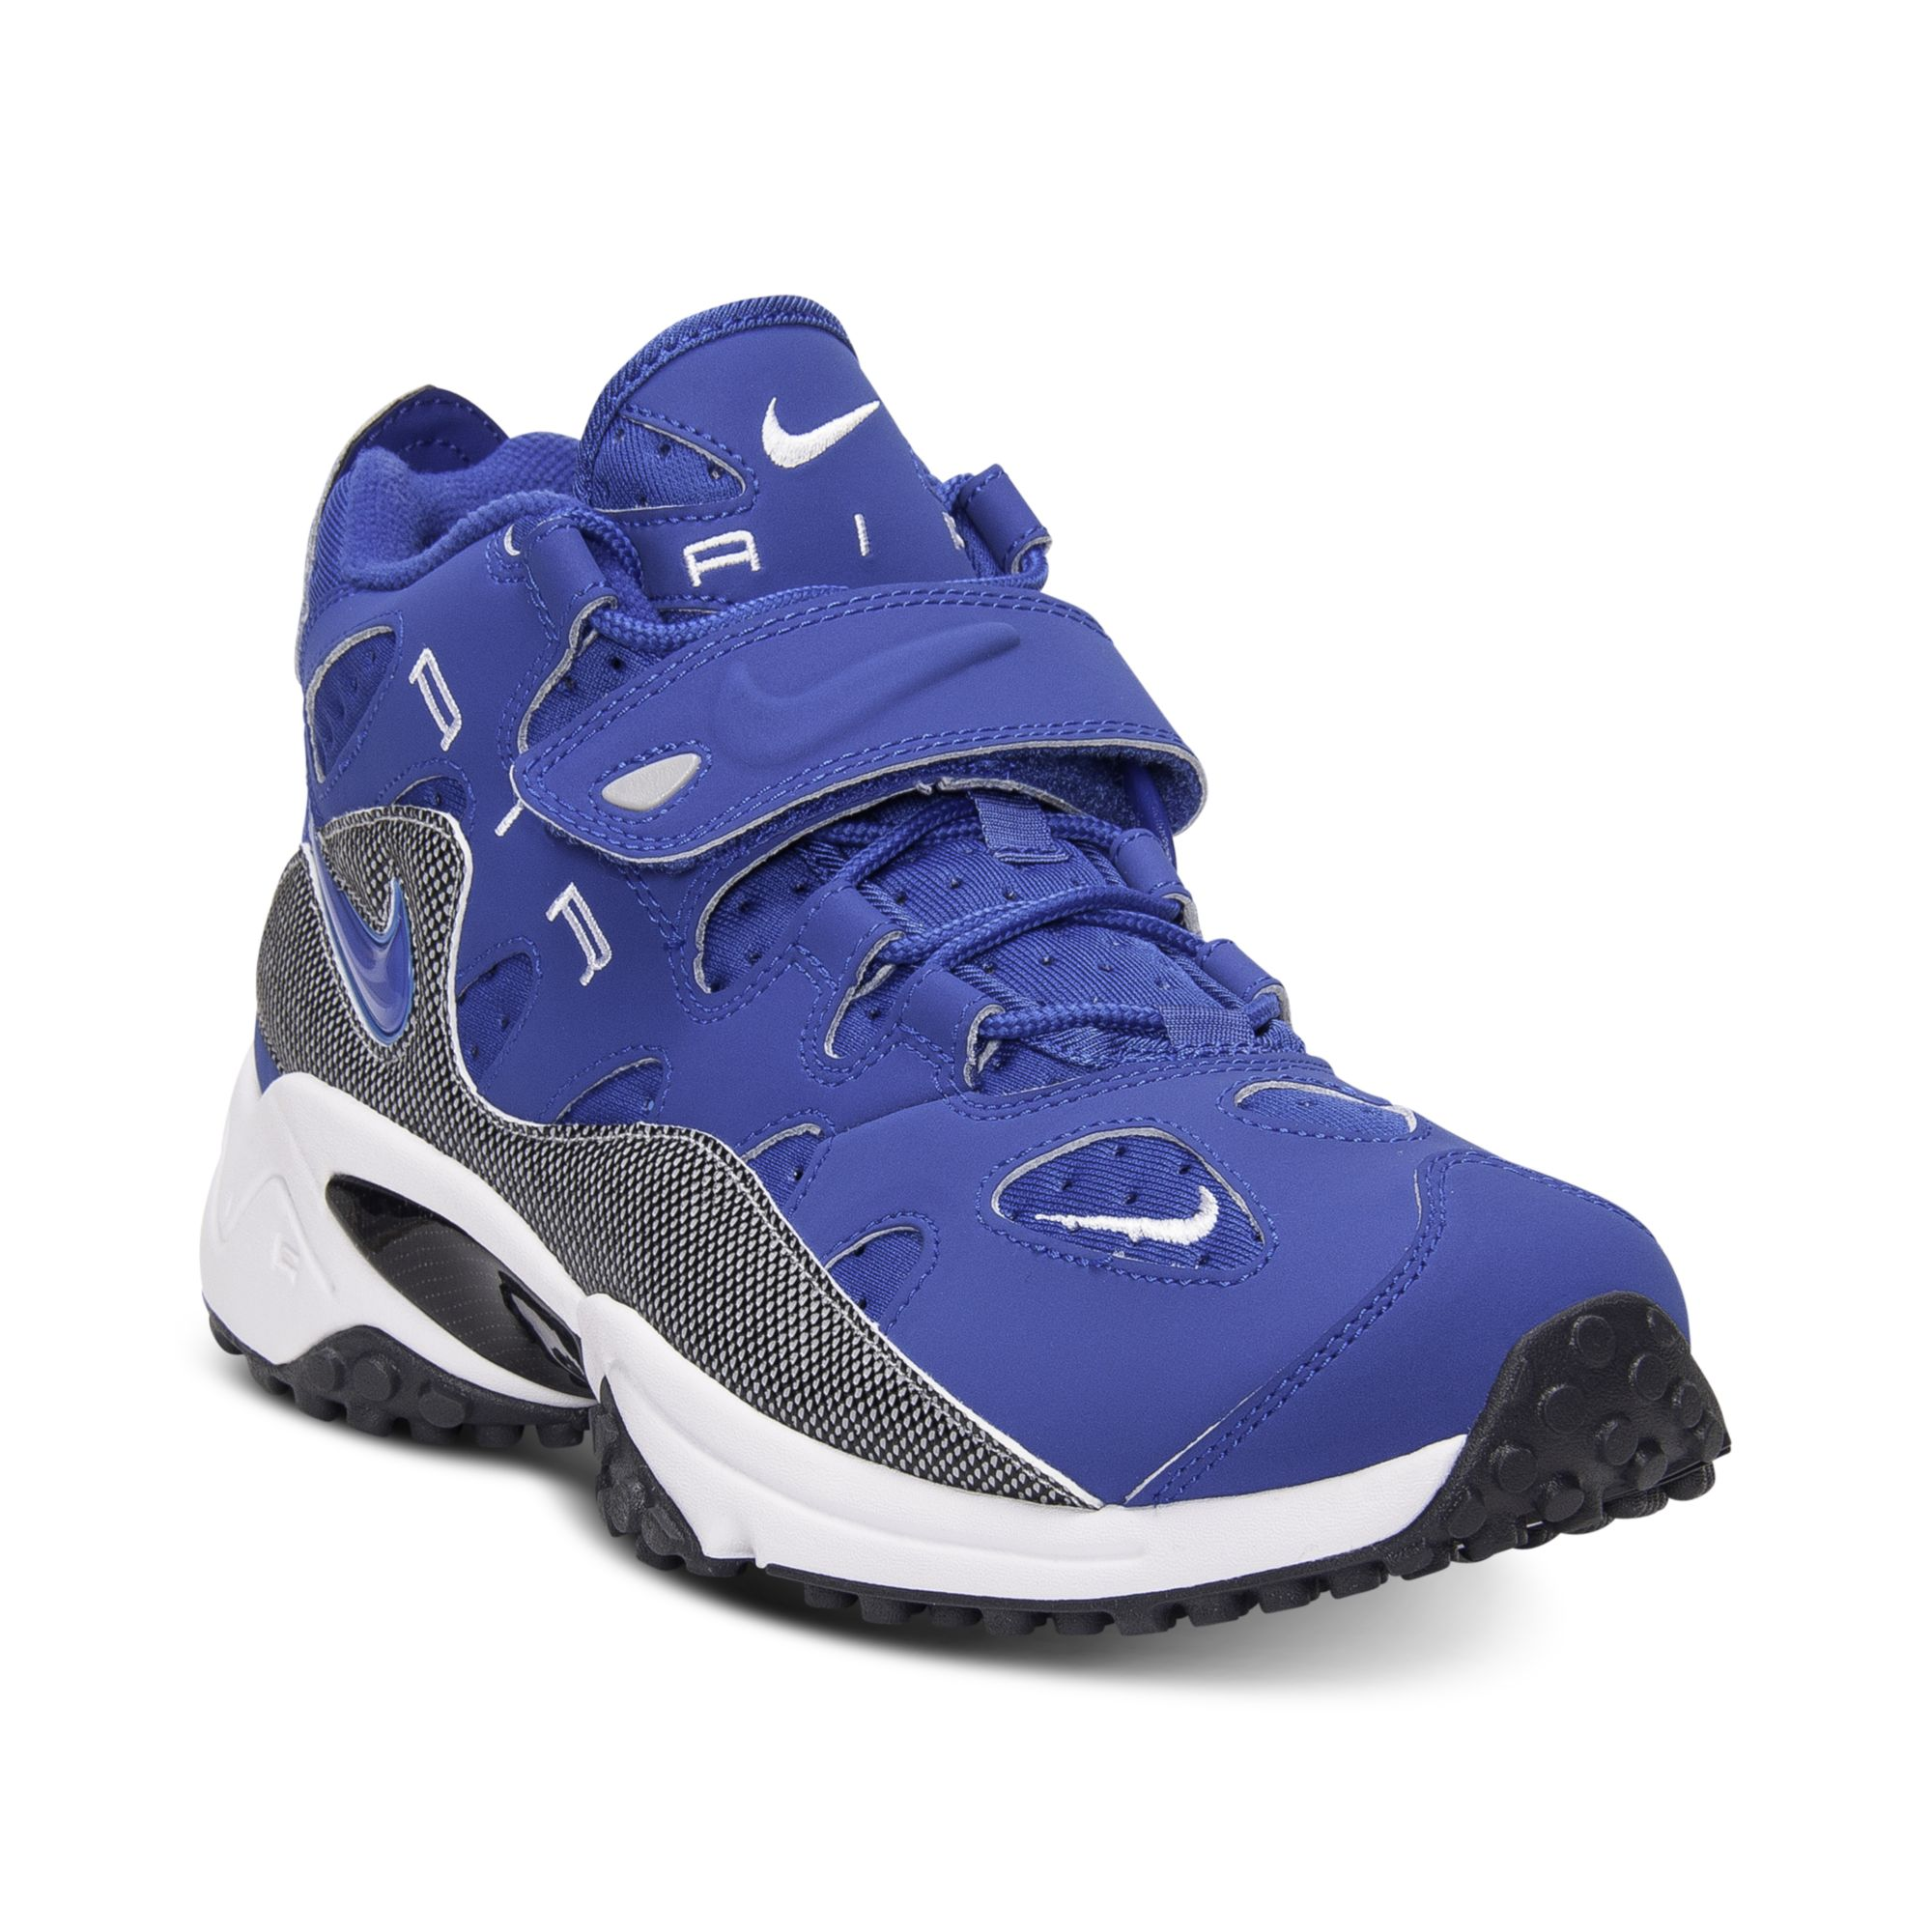 quality design 83a5f d3e2c Nike Air Max Speed Turf Raider Training Sneakers in Blue for Men - Lyst